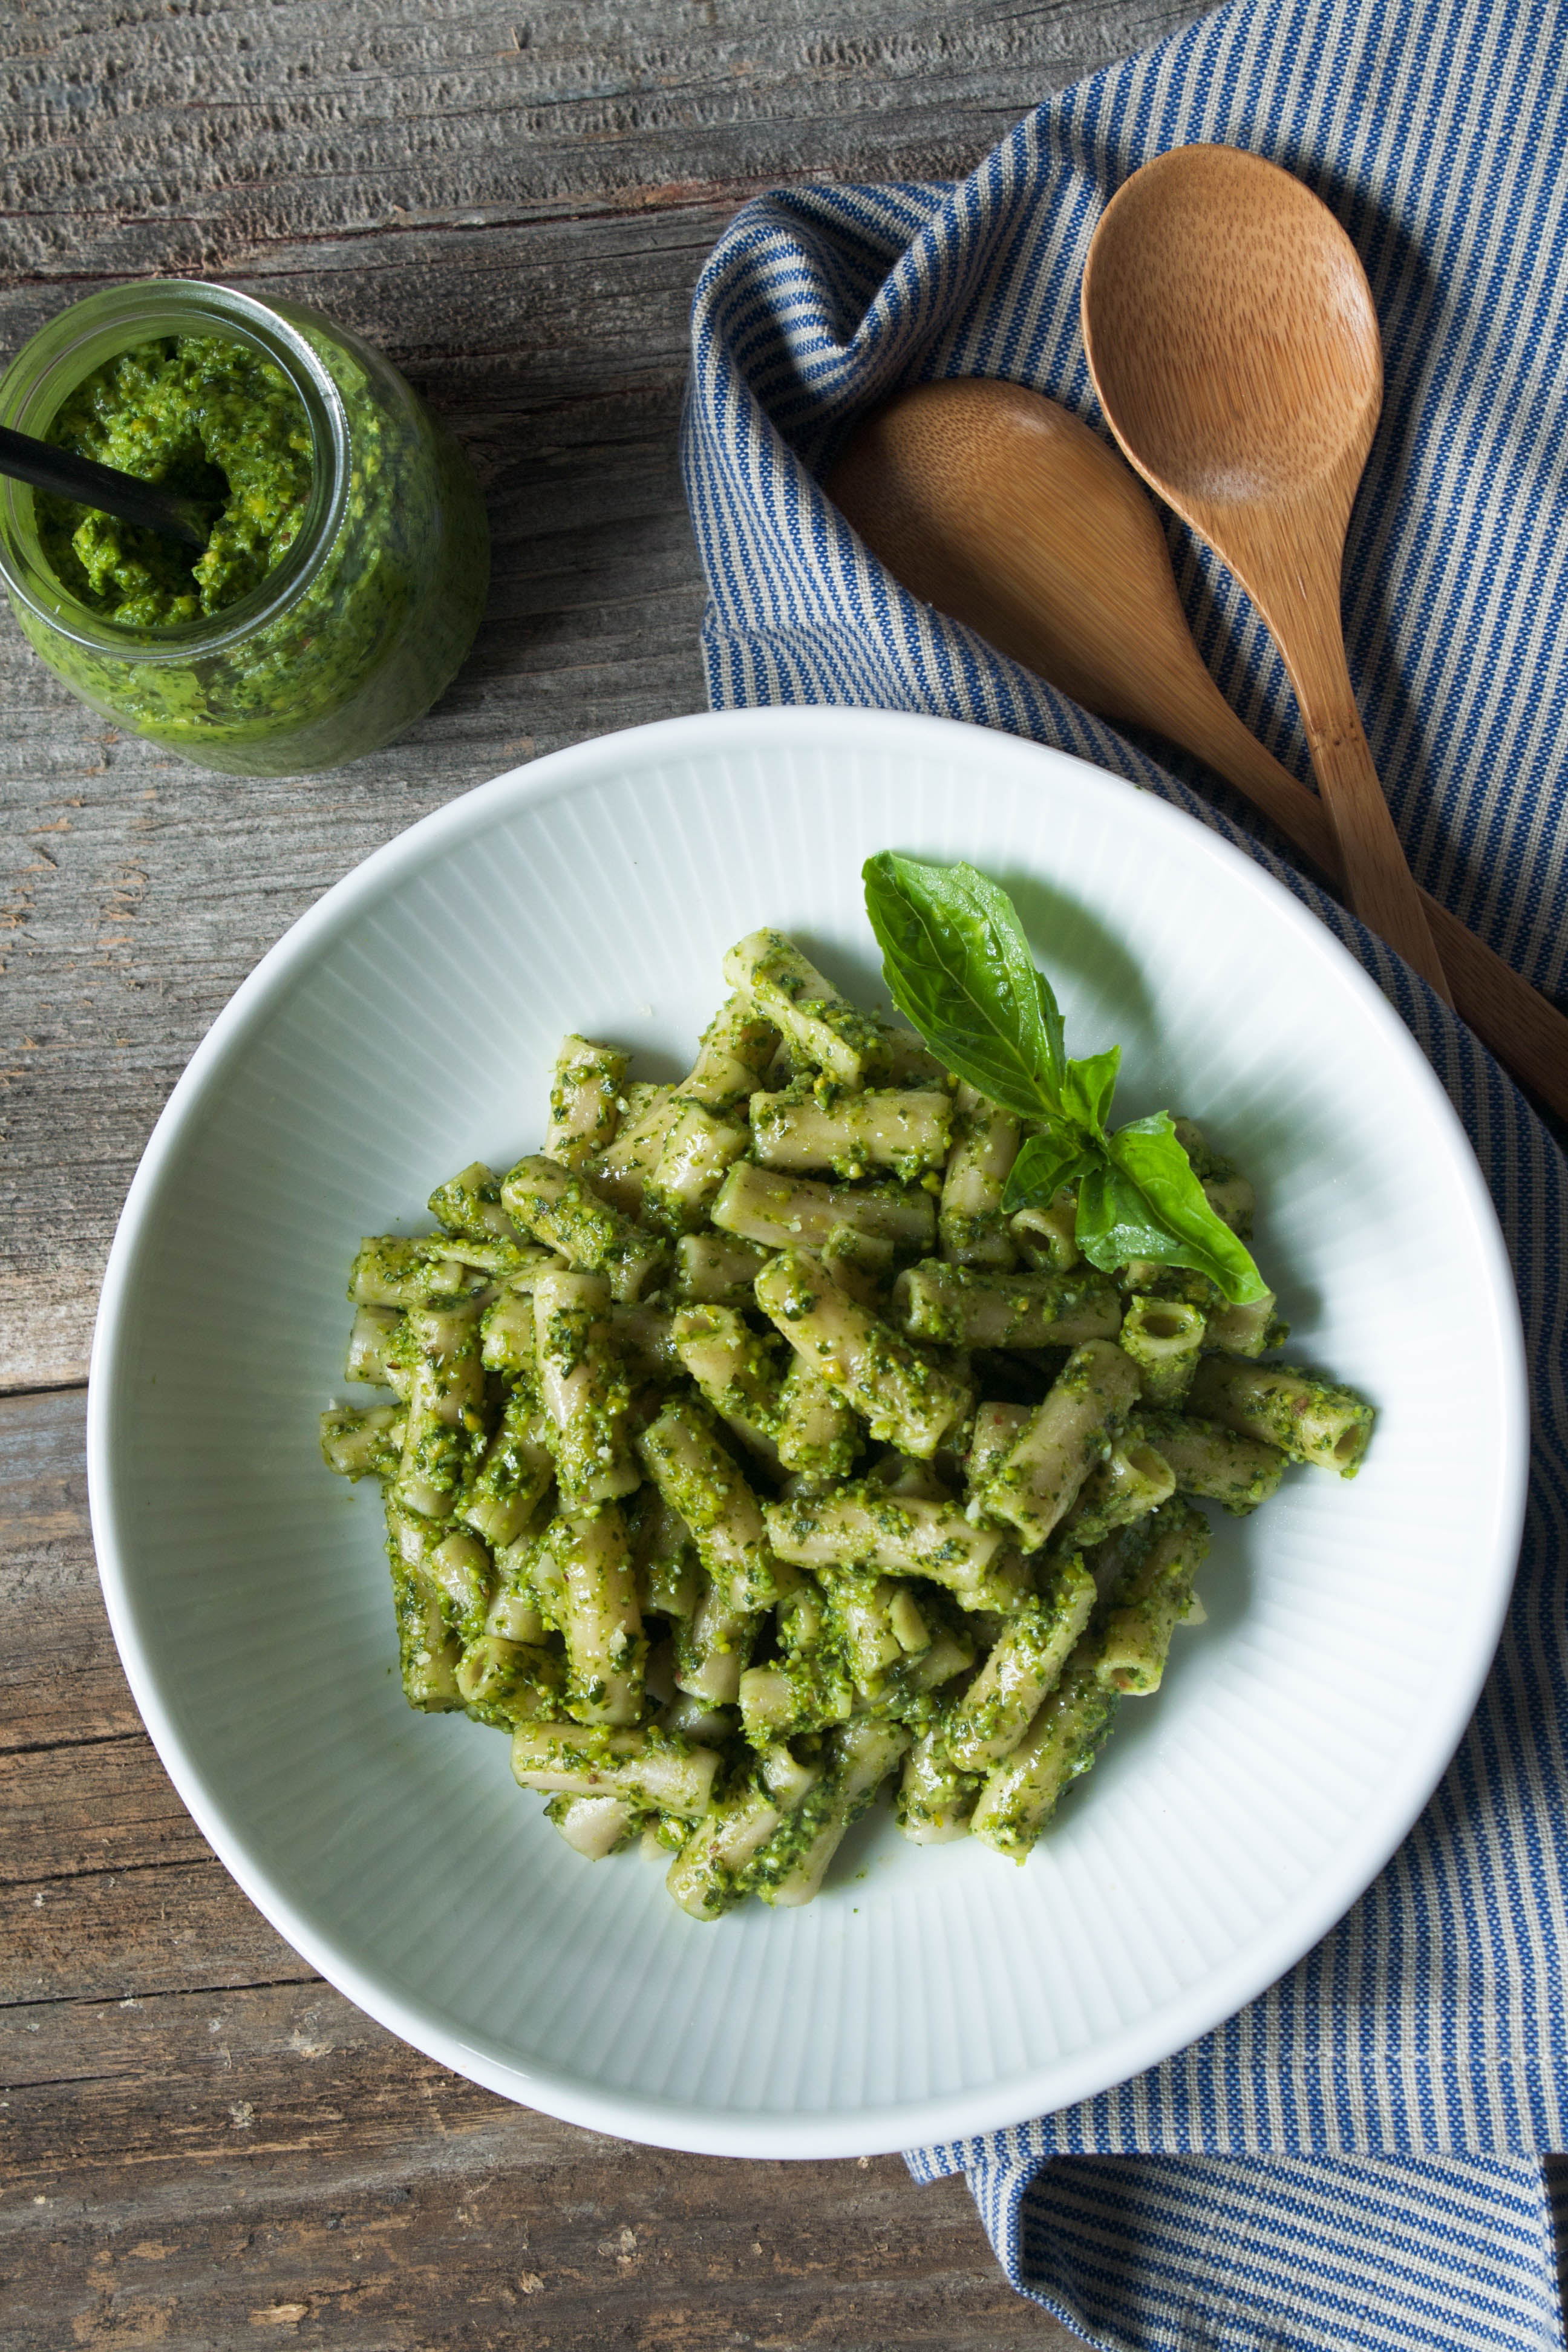 Pistachio & Arugula Basil Pesto + 4 Ways to Use Pesto